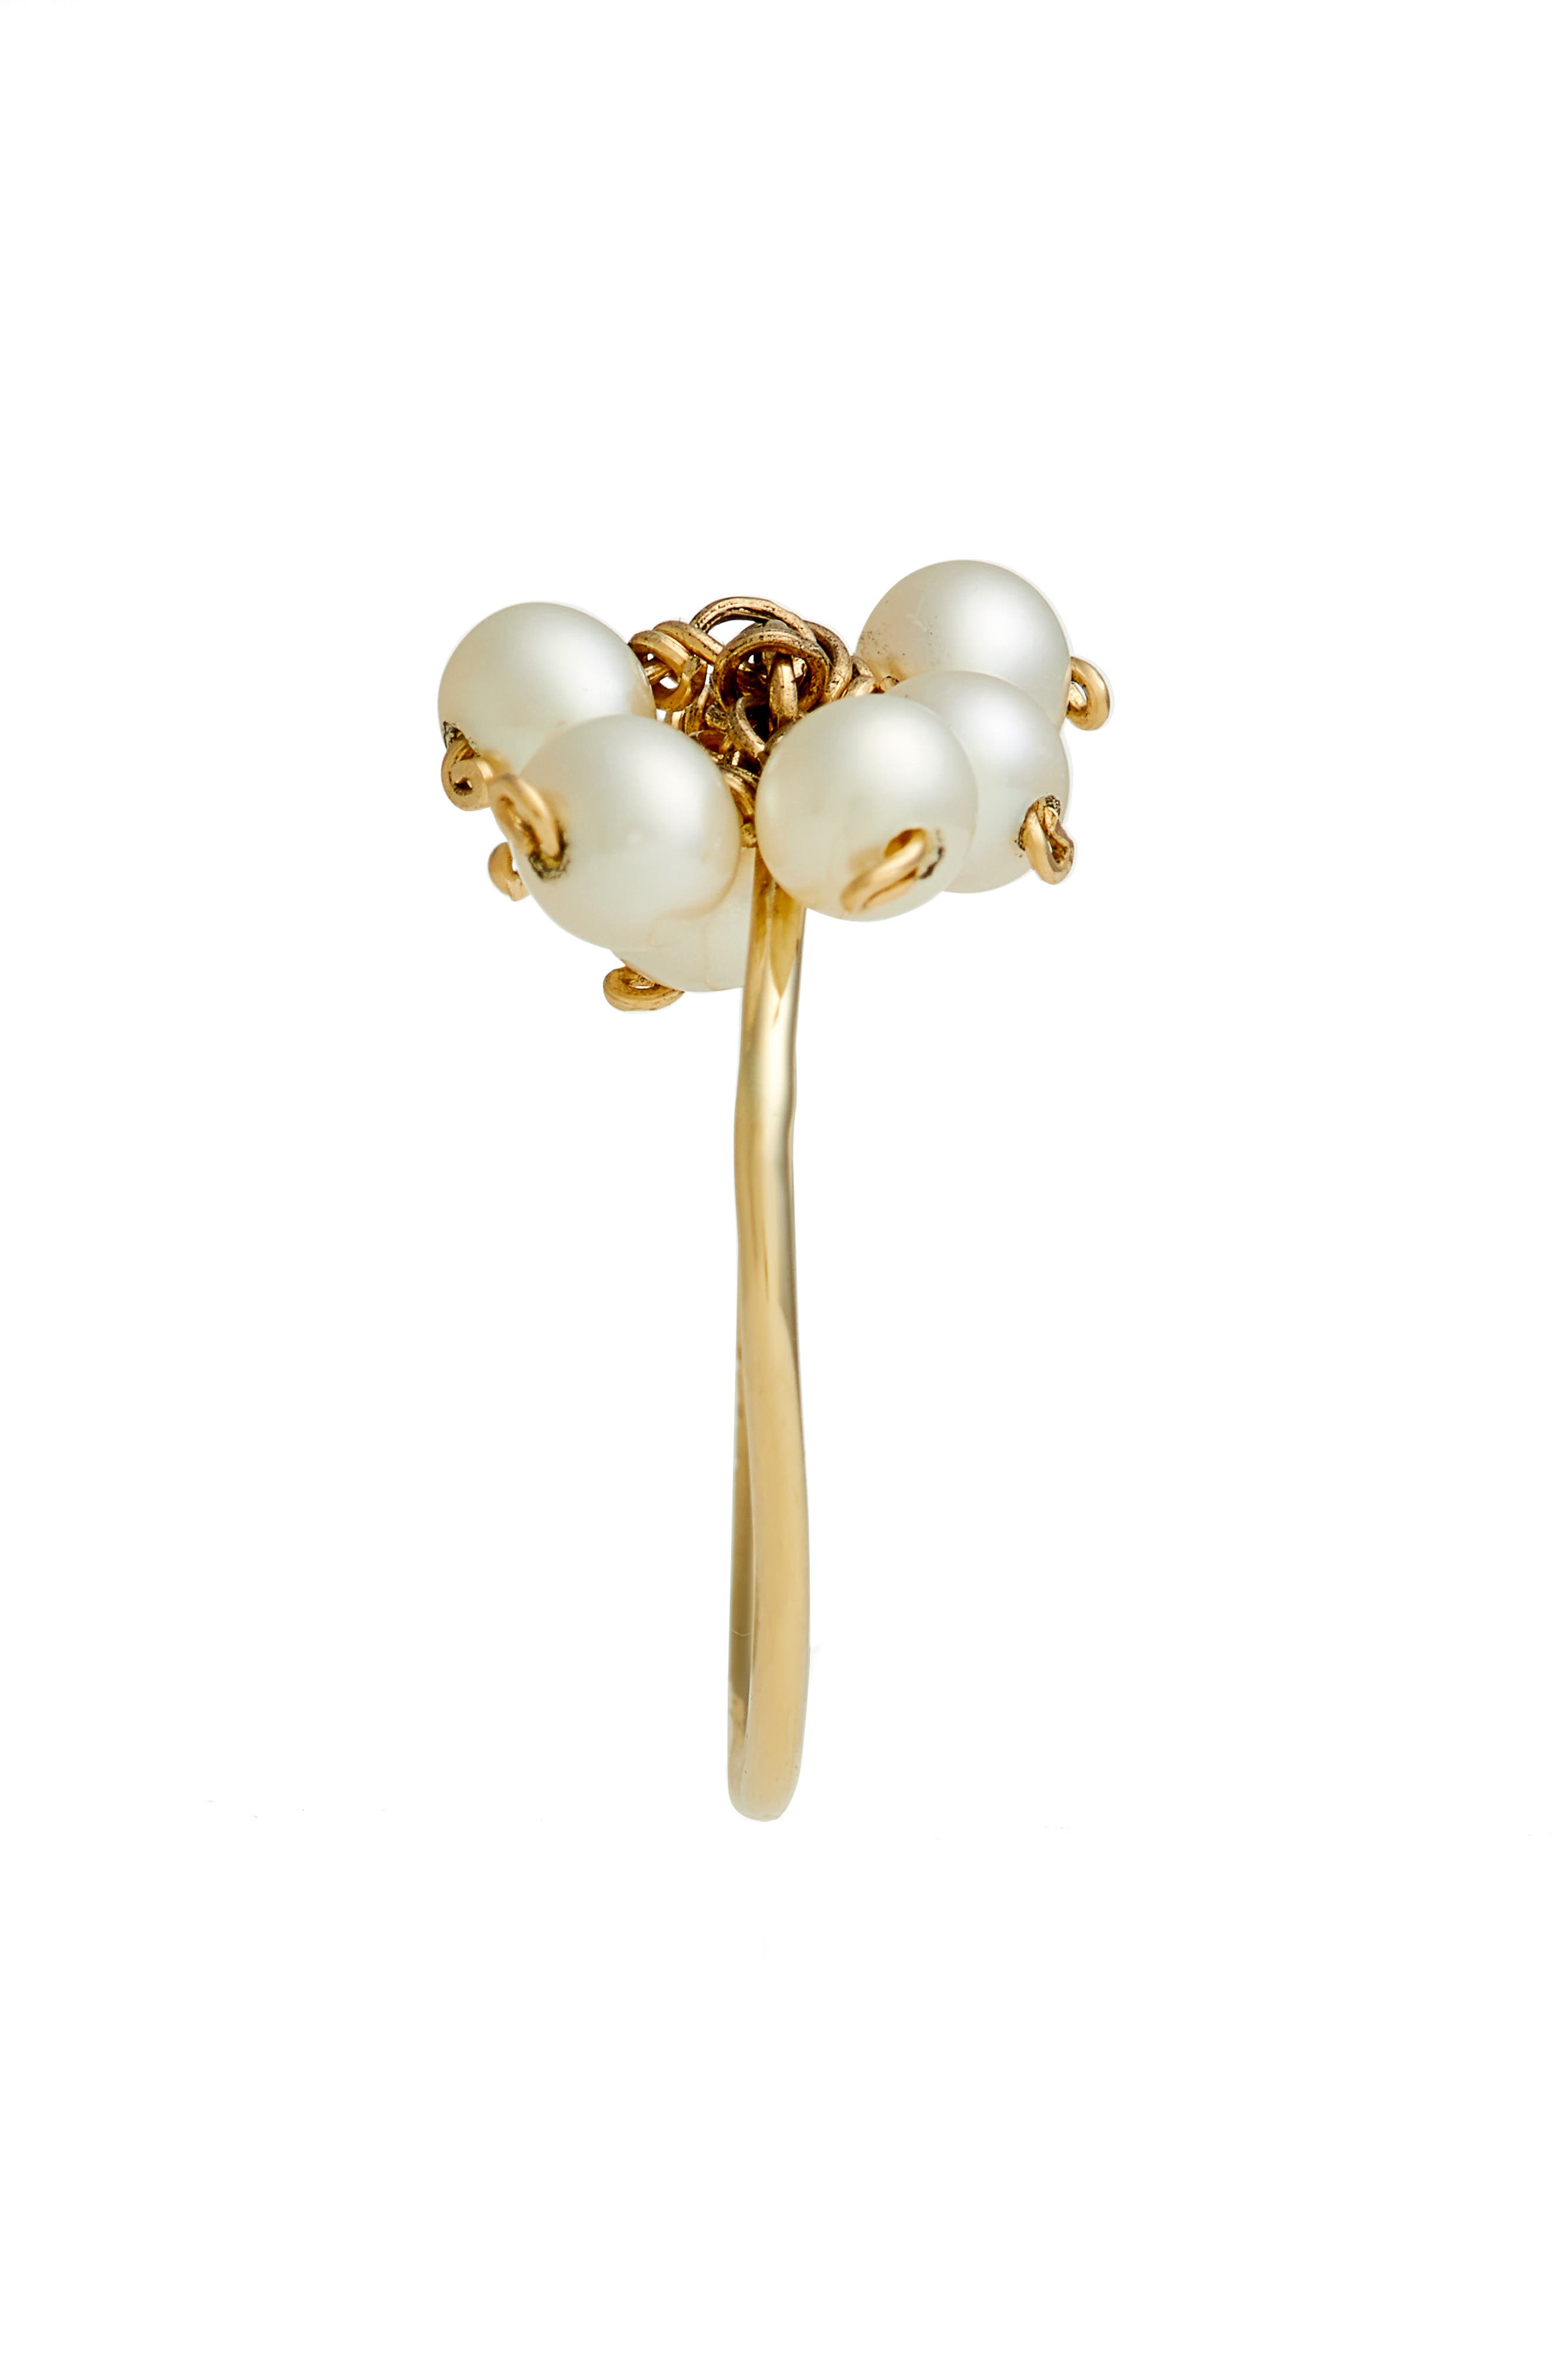 Baby Pearl Cluster Ring,                             Alternate thumbnail 2, color,                             YELLOW GOLD/ WHITE PEARL